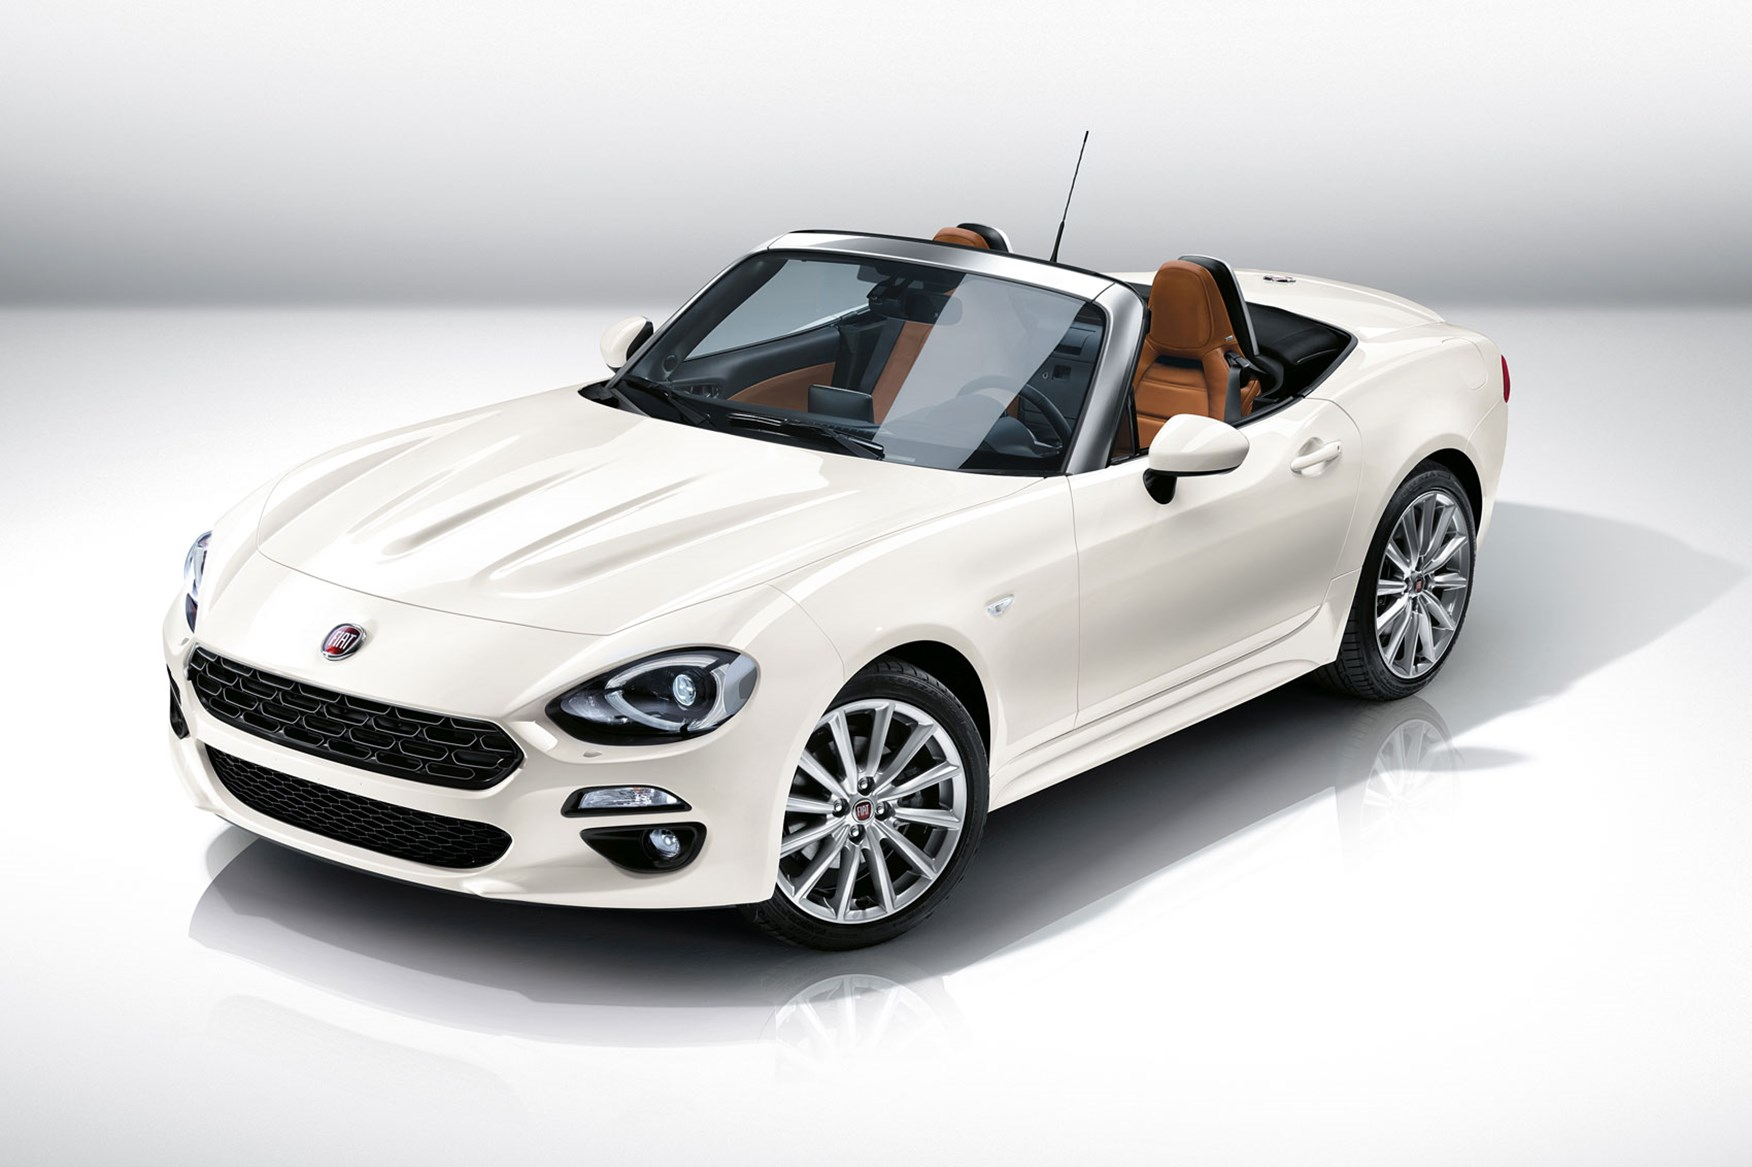 http://images.car.bauercdn.com/pagefiles/21988/1752x1168/fiat124spider_3.jpg?mode=max&quality=90&scale=down